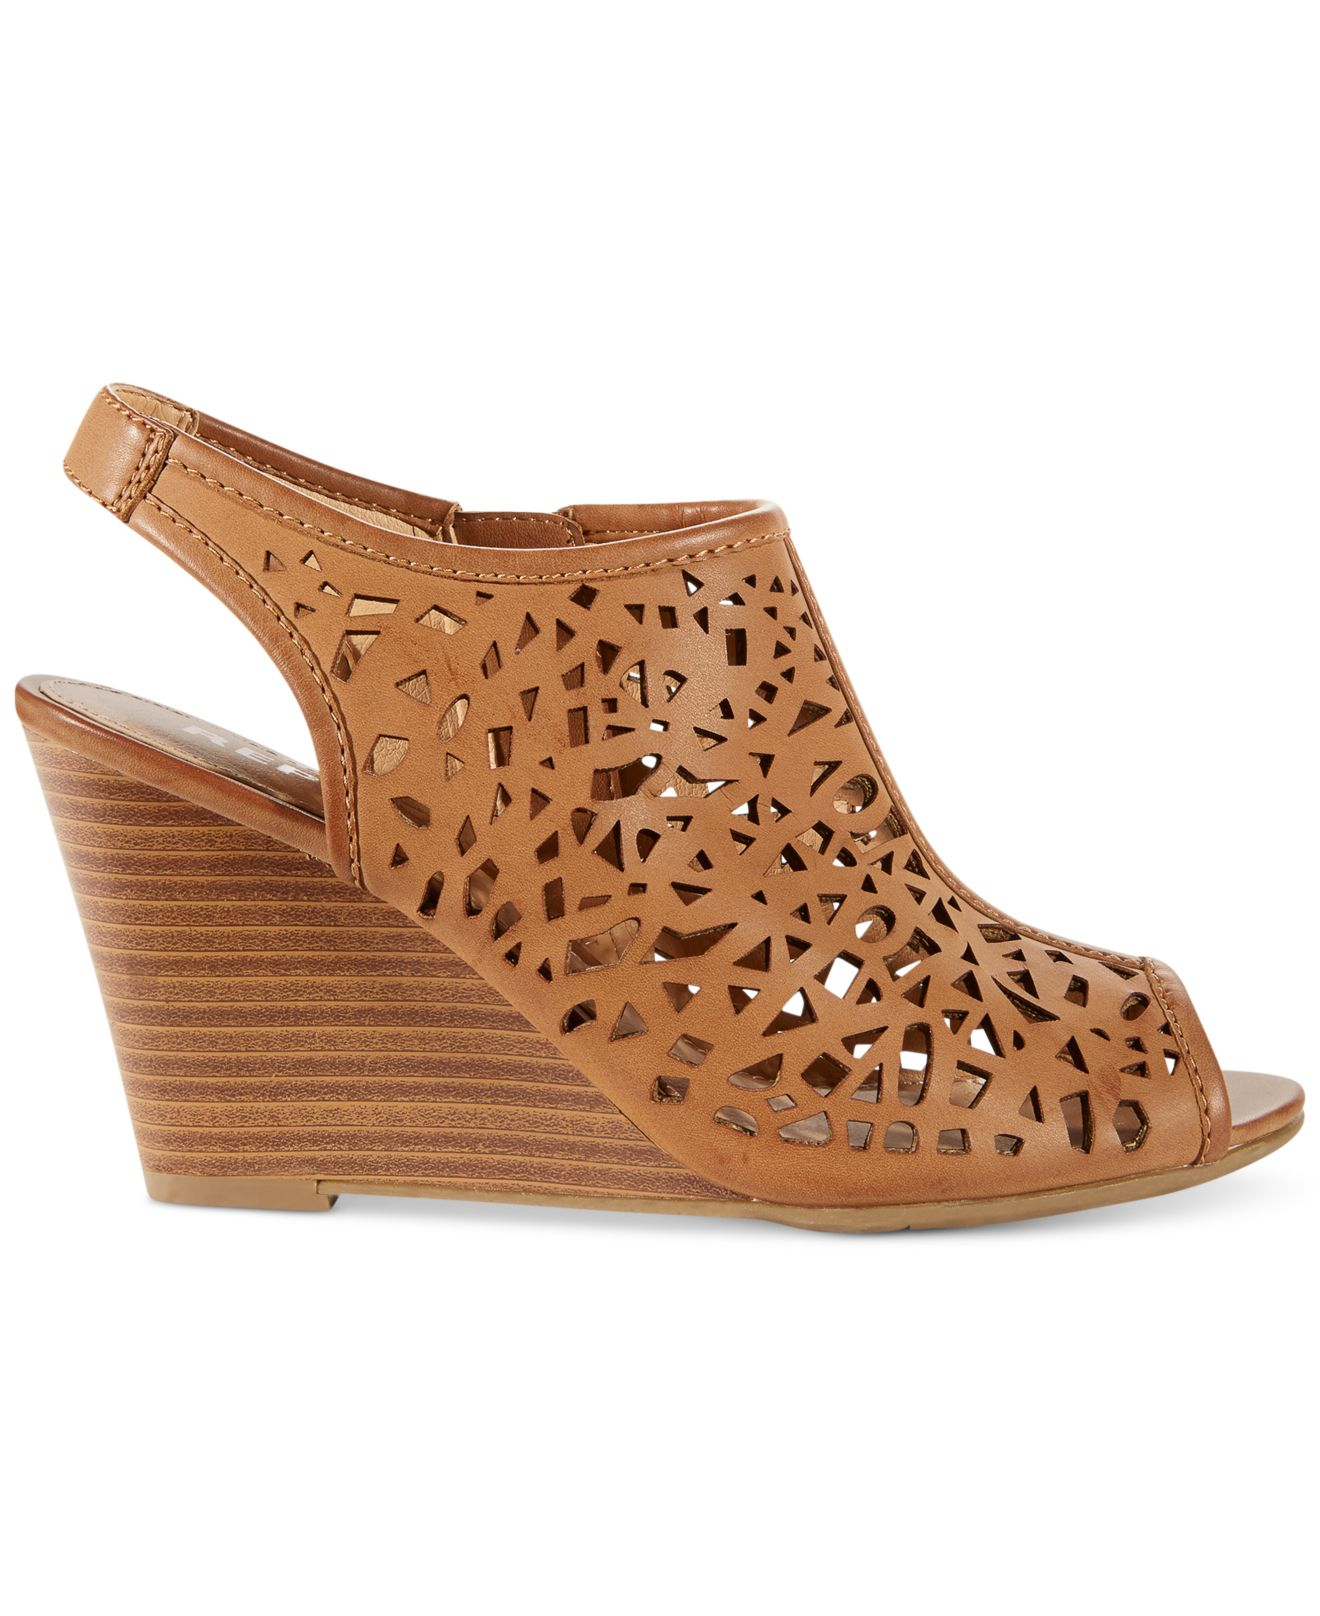 Report Stellar Laser Cut Wedge Sandals In Brown Lyst